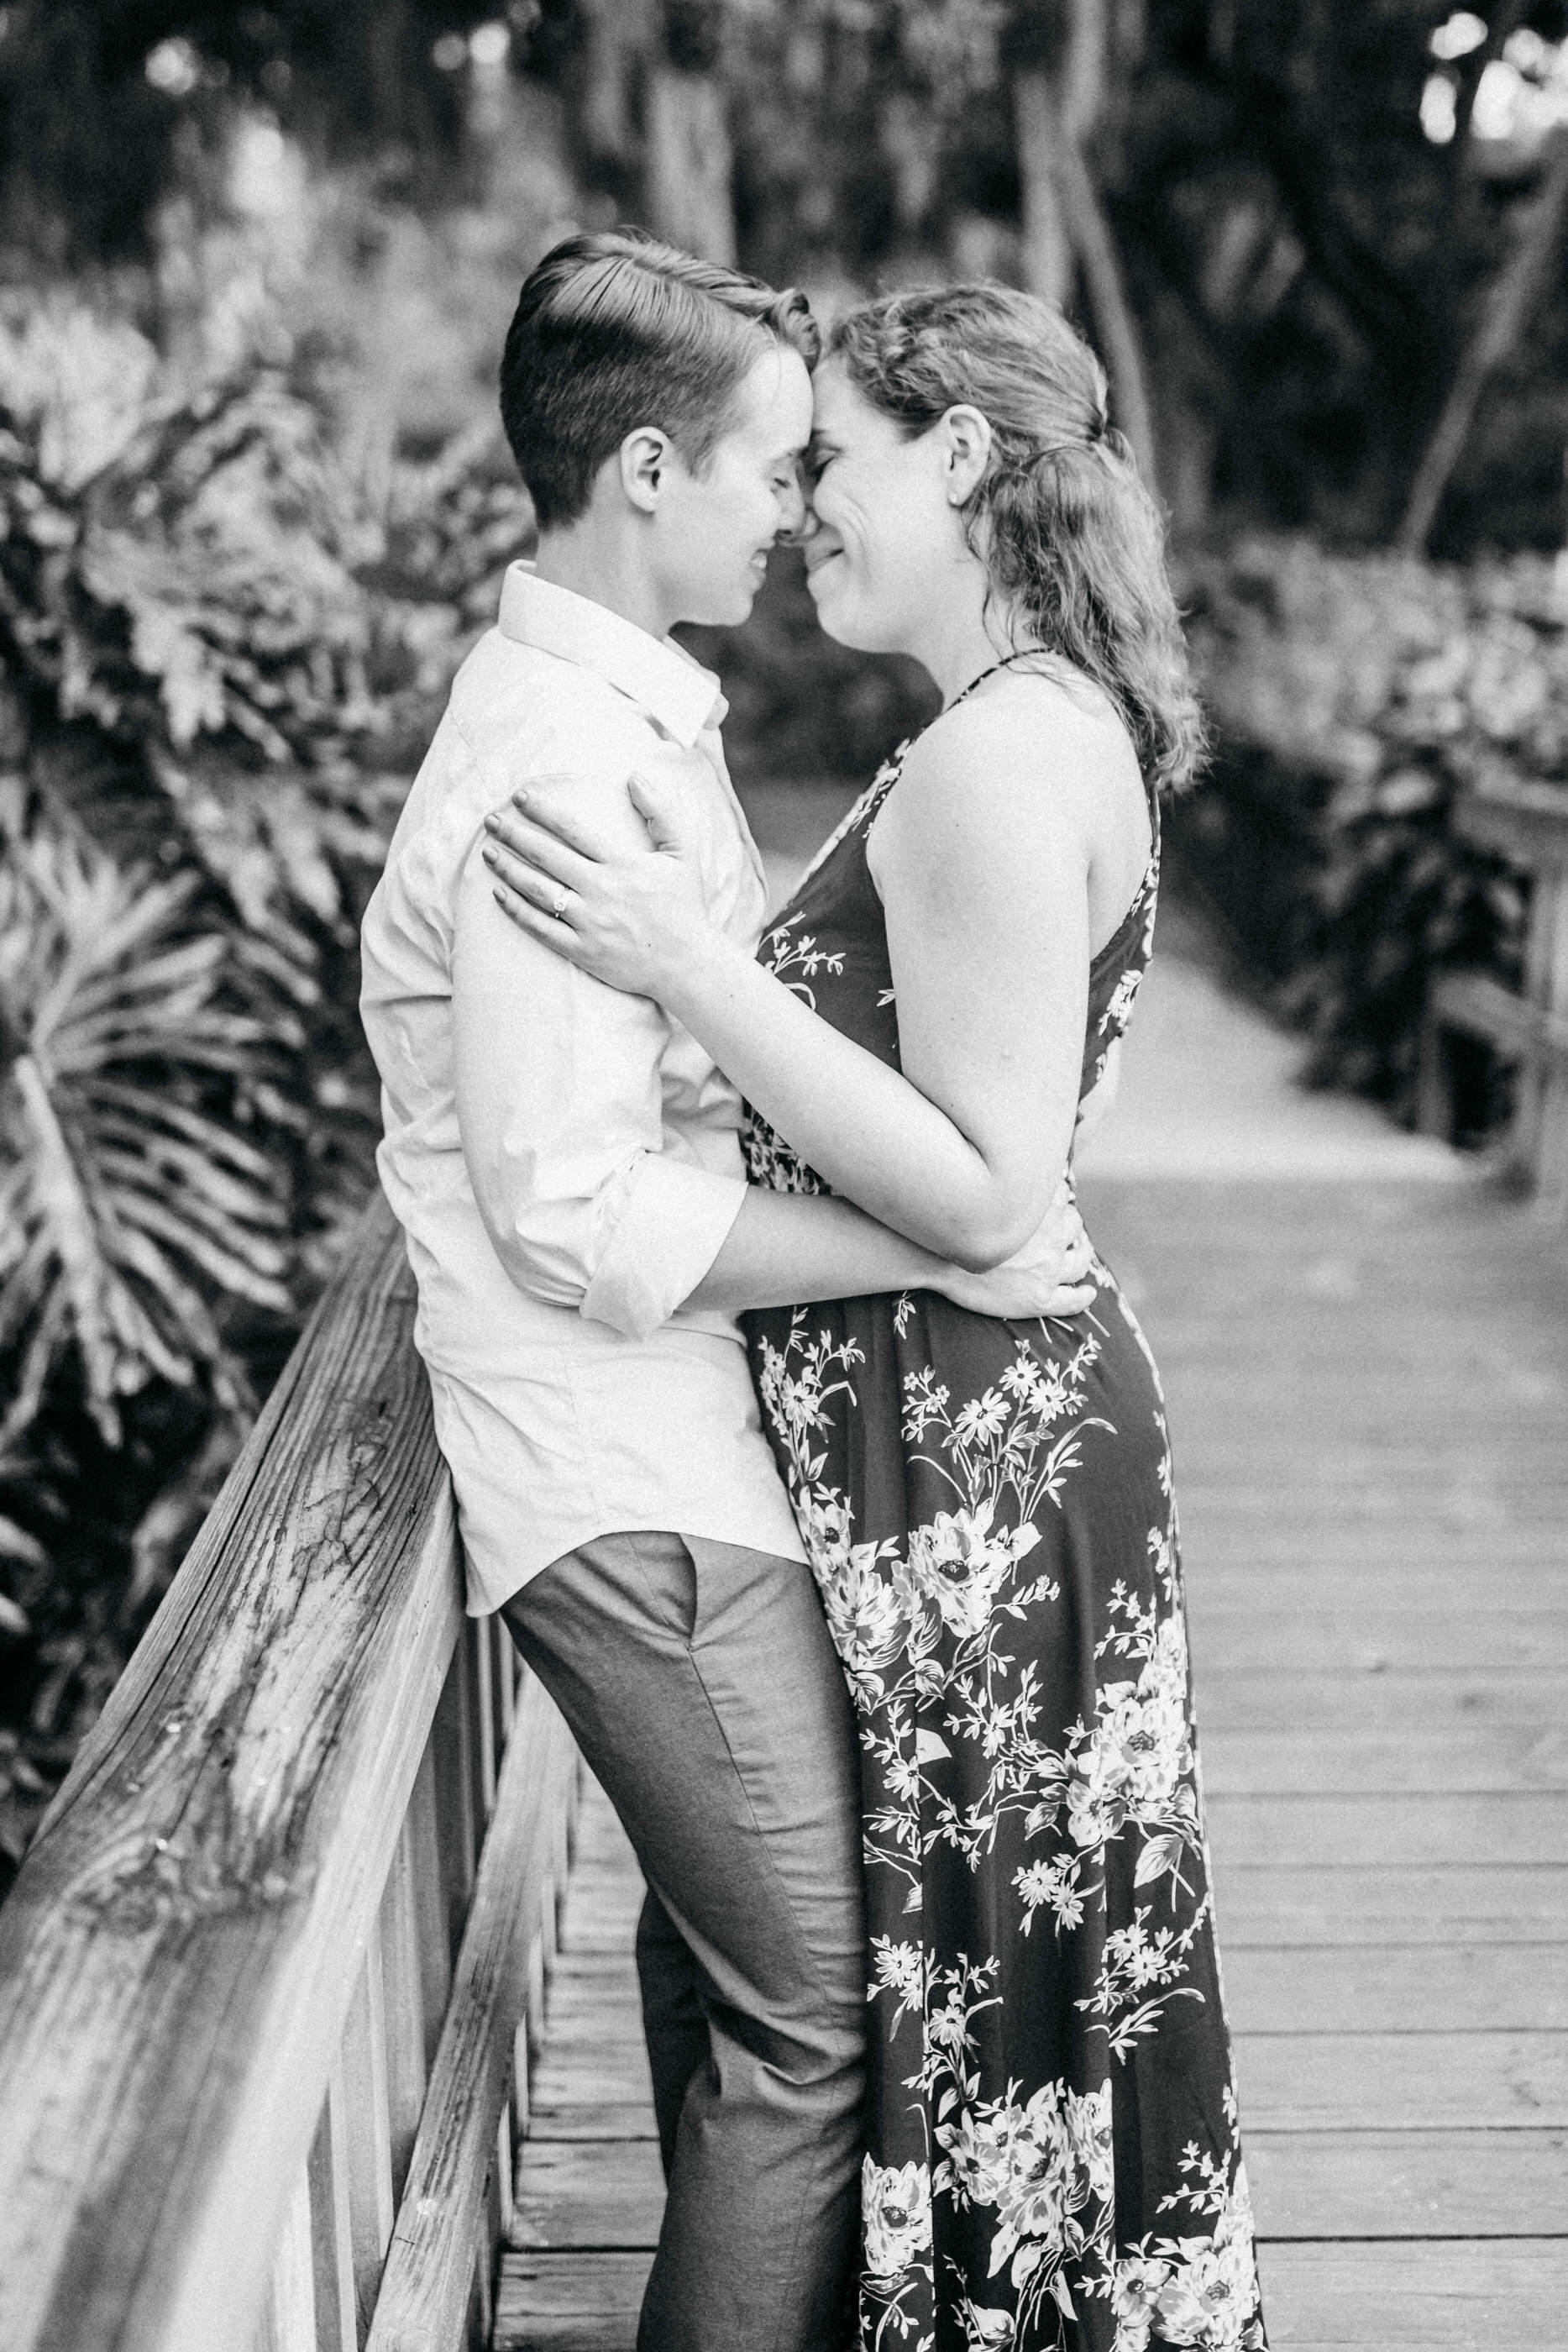 Orlando Natural Forest State Park Engagement Photos- Romantic LGBT Engaged Couples photos112.jpg